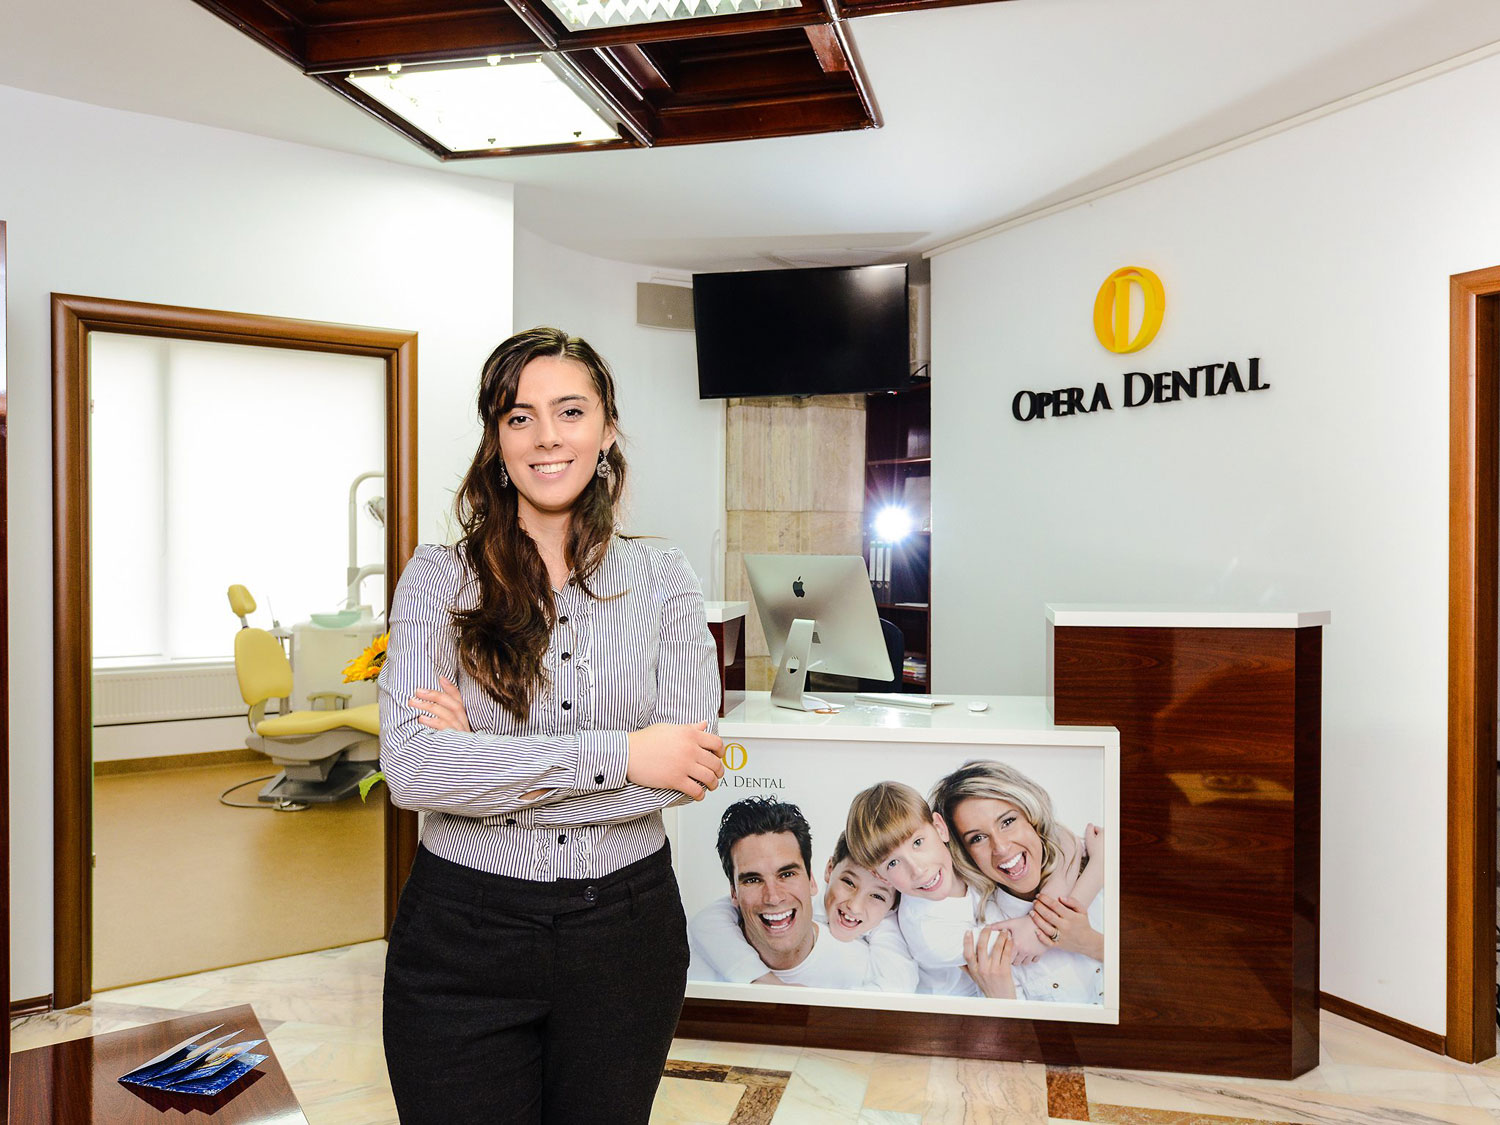 opera dental header branding project